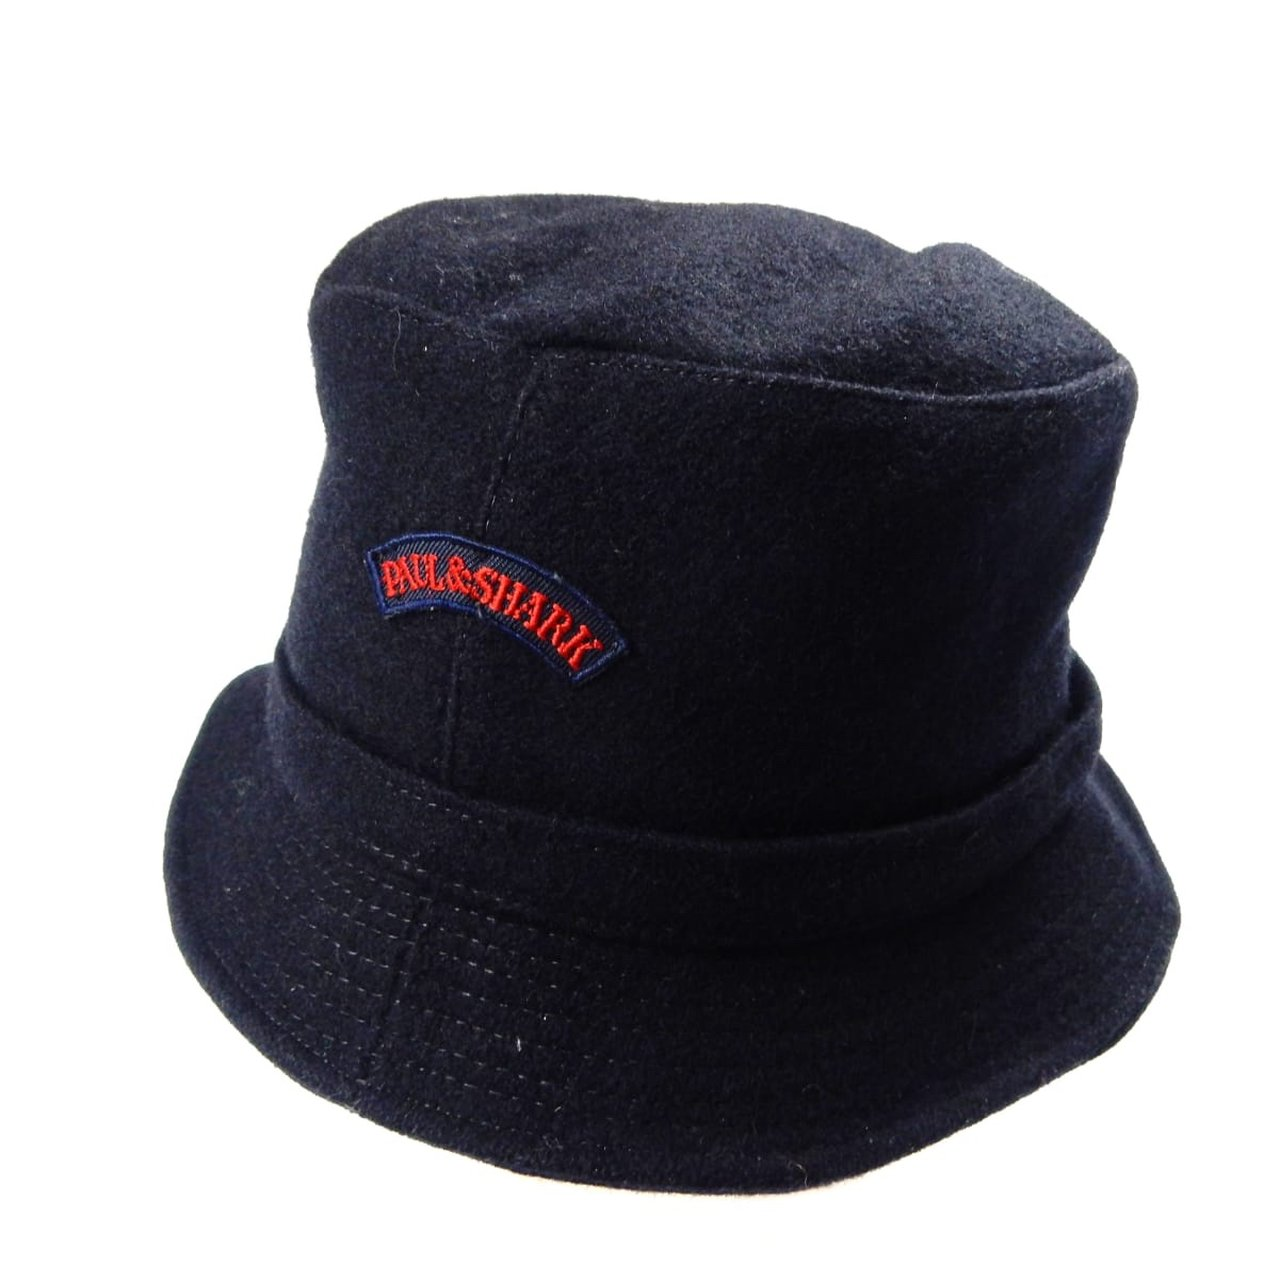 Paul   Shark bucket hat coming in a thick wool material c3e0e3e21d1